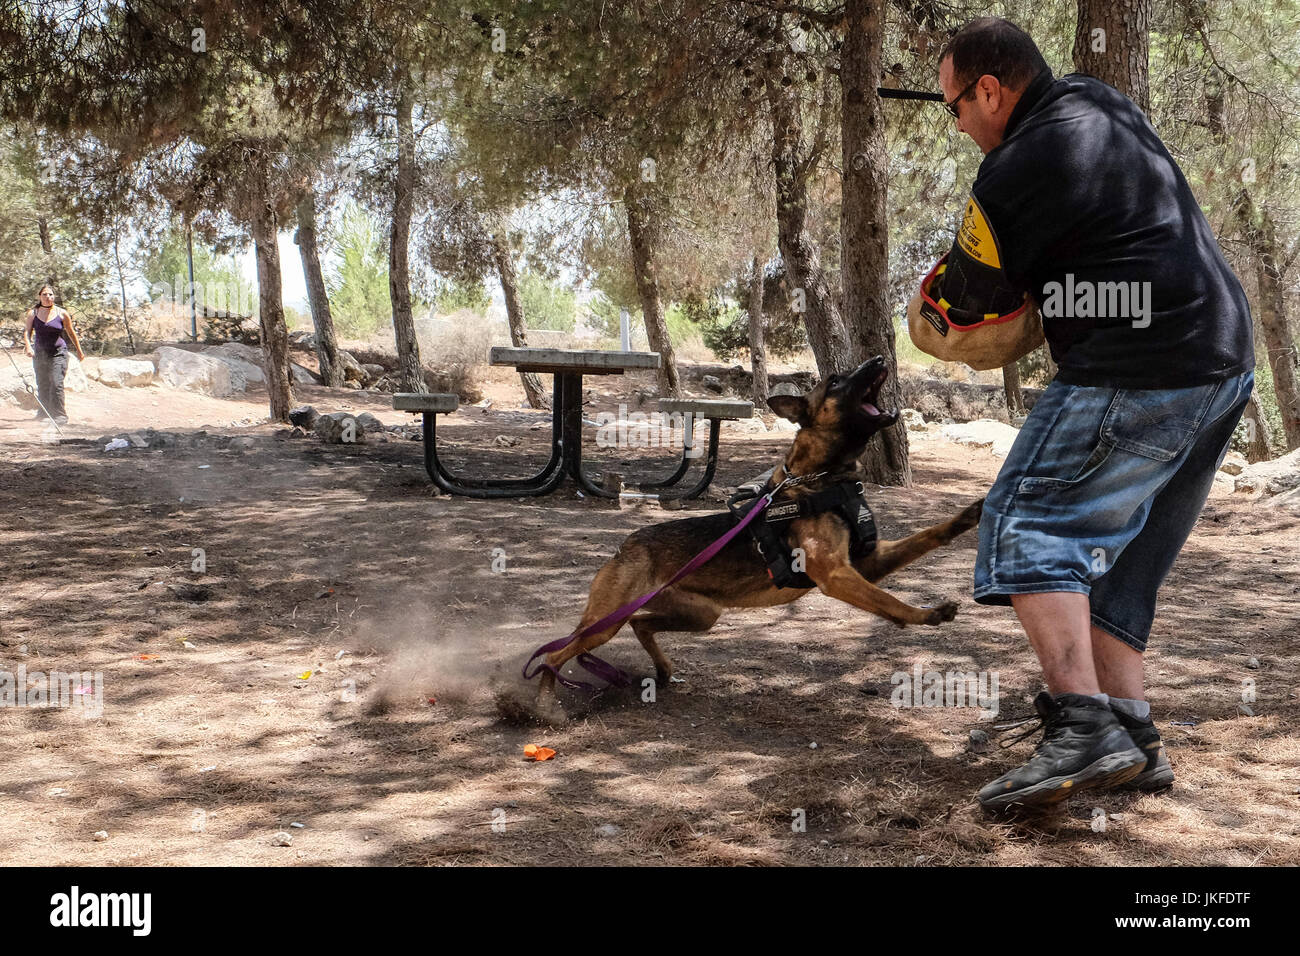 Efrat, West Bank. 23rd July, 2017. The Israel Dog Unit, IDU, a non profit canine unit, trains dogs for life saving - Stock Image